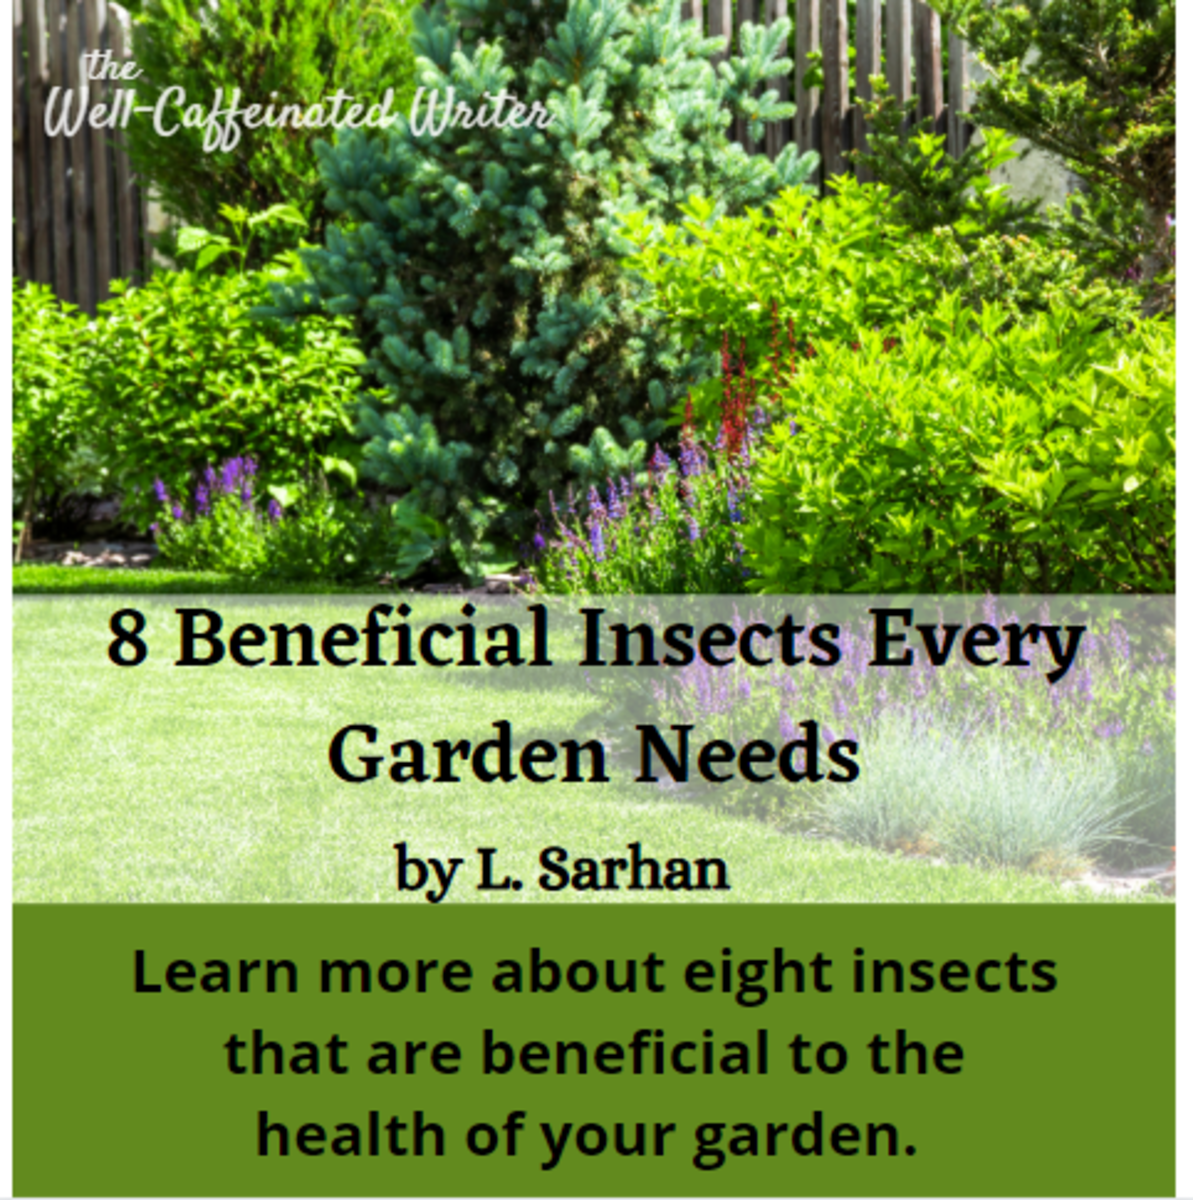 8 Beneficial Insects Every Garden Needs